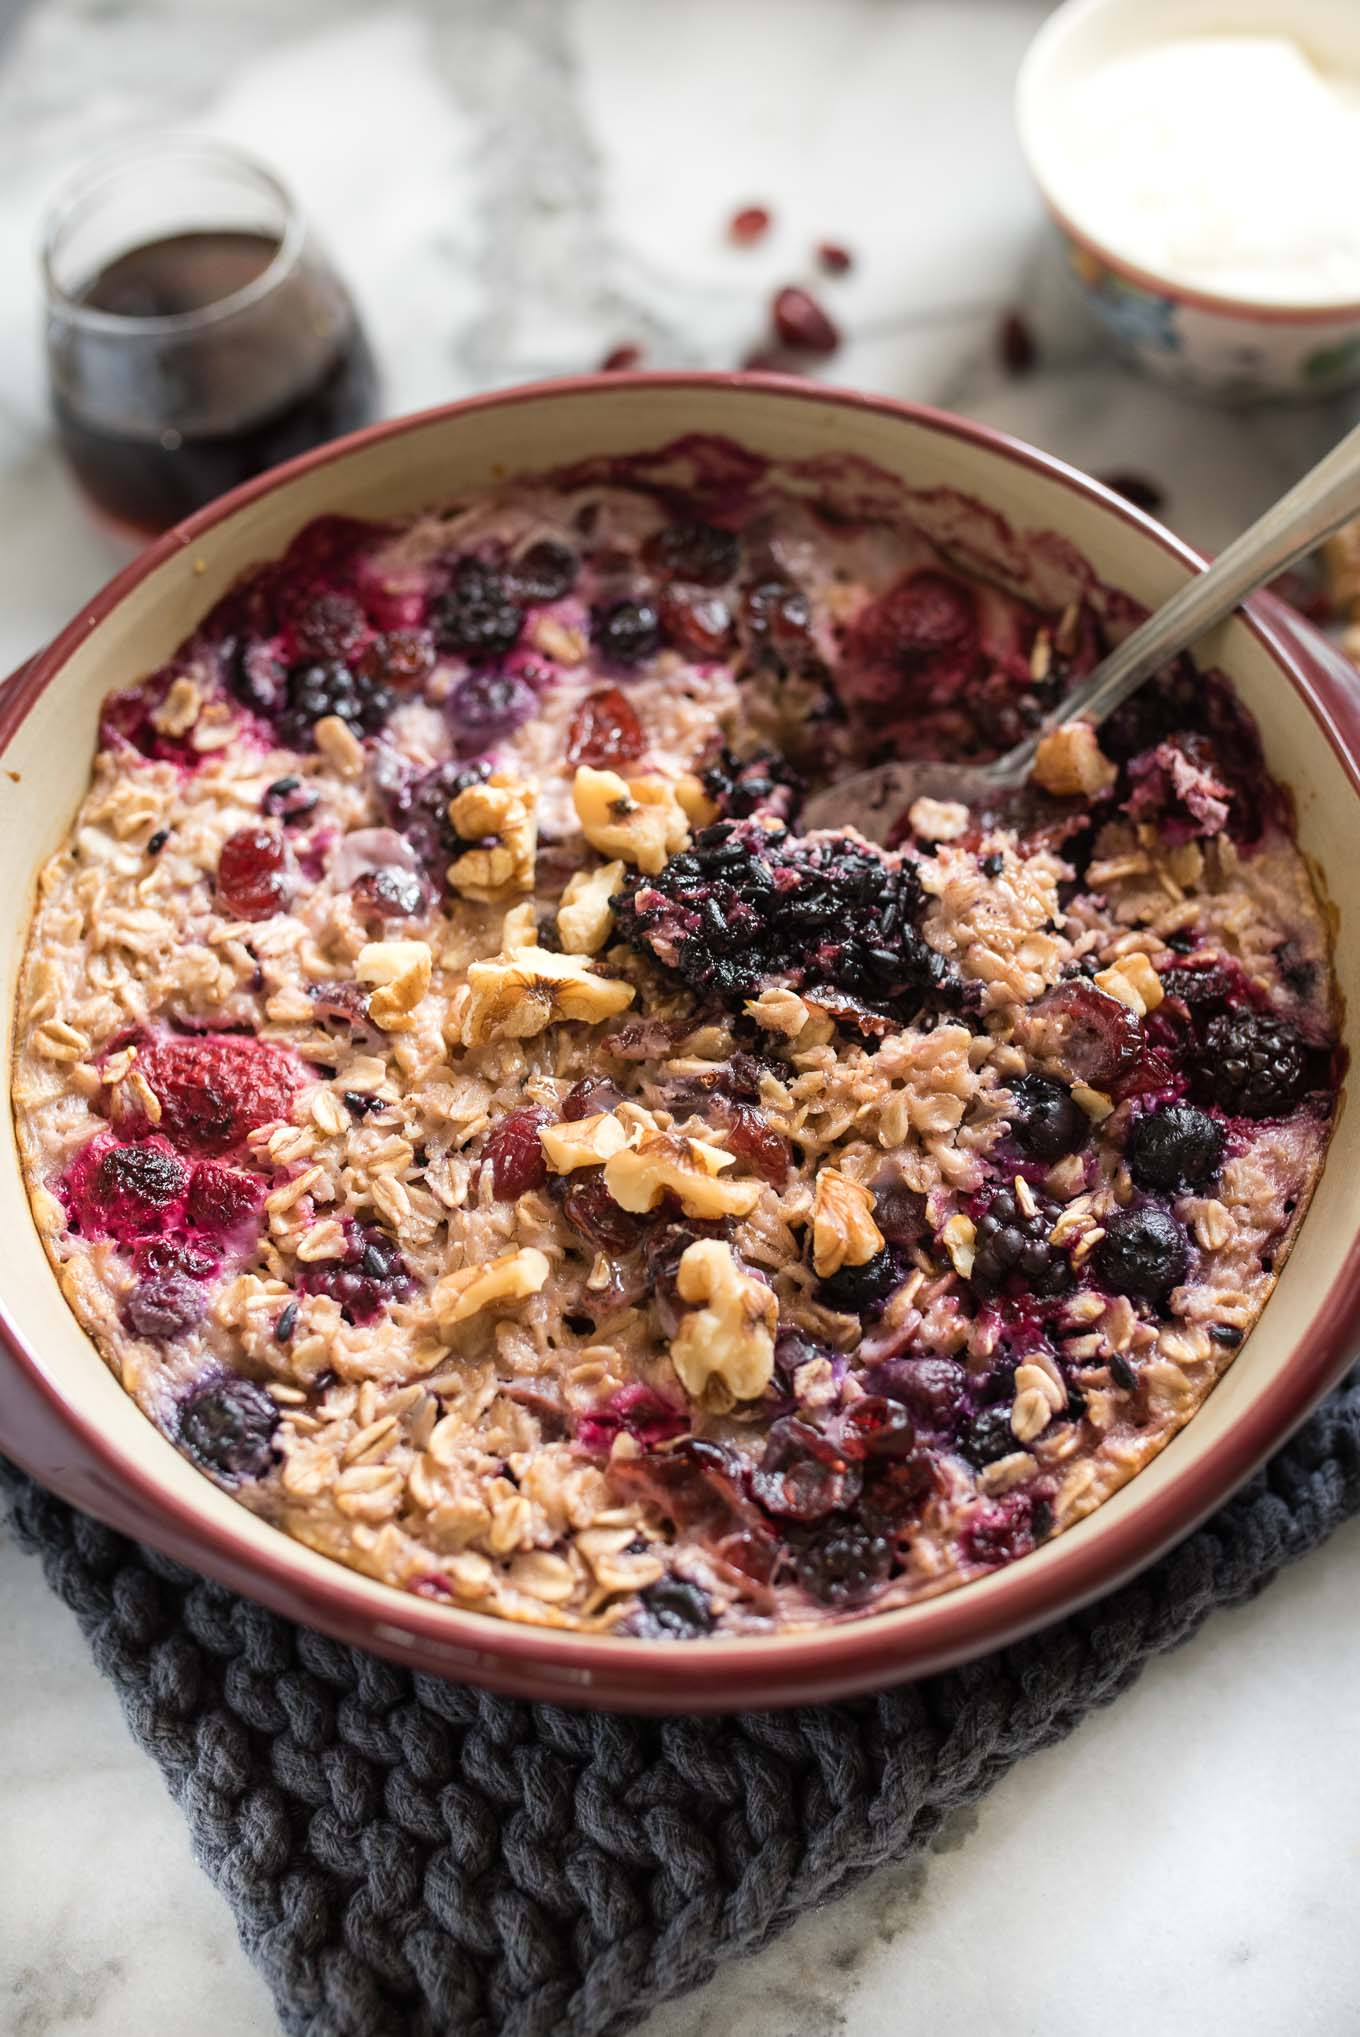 Berry Lavender Baked Oatmeal is a simple, gluten-free nourishing breakfast to help you start your day off right.